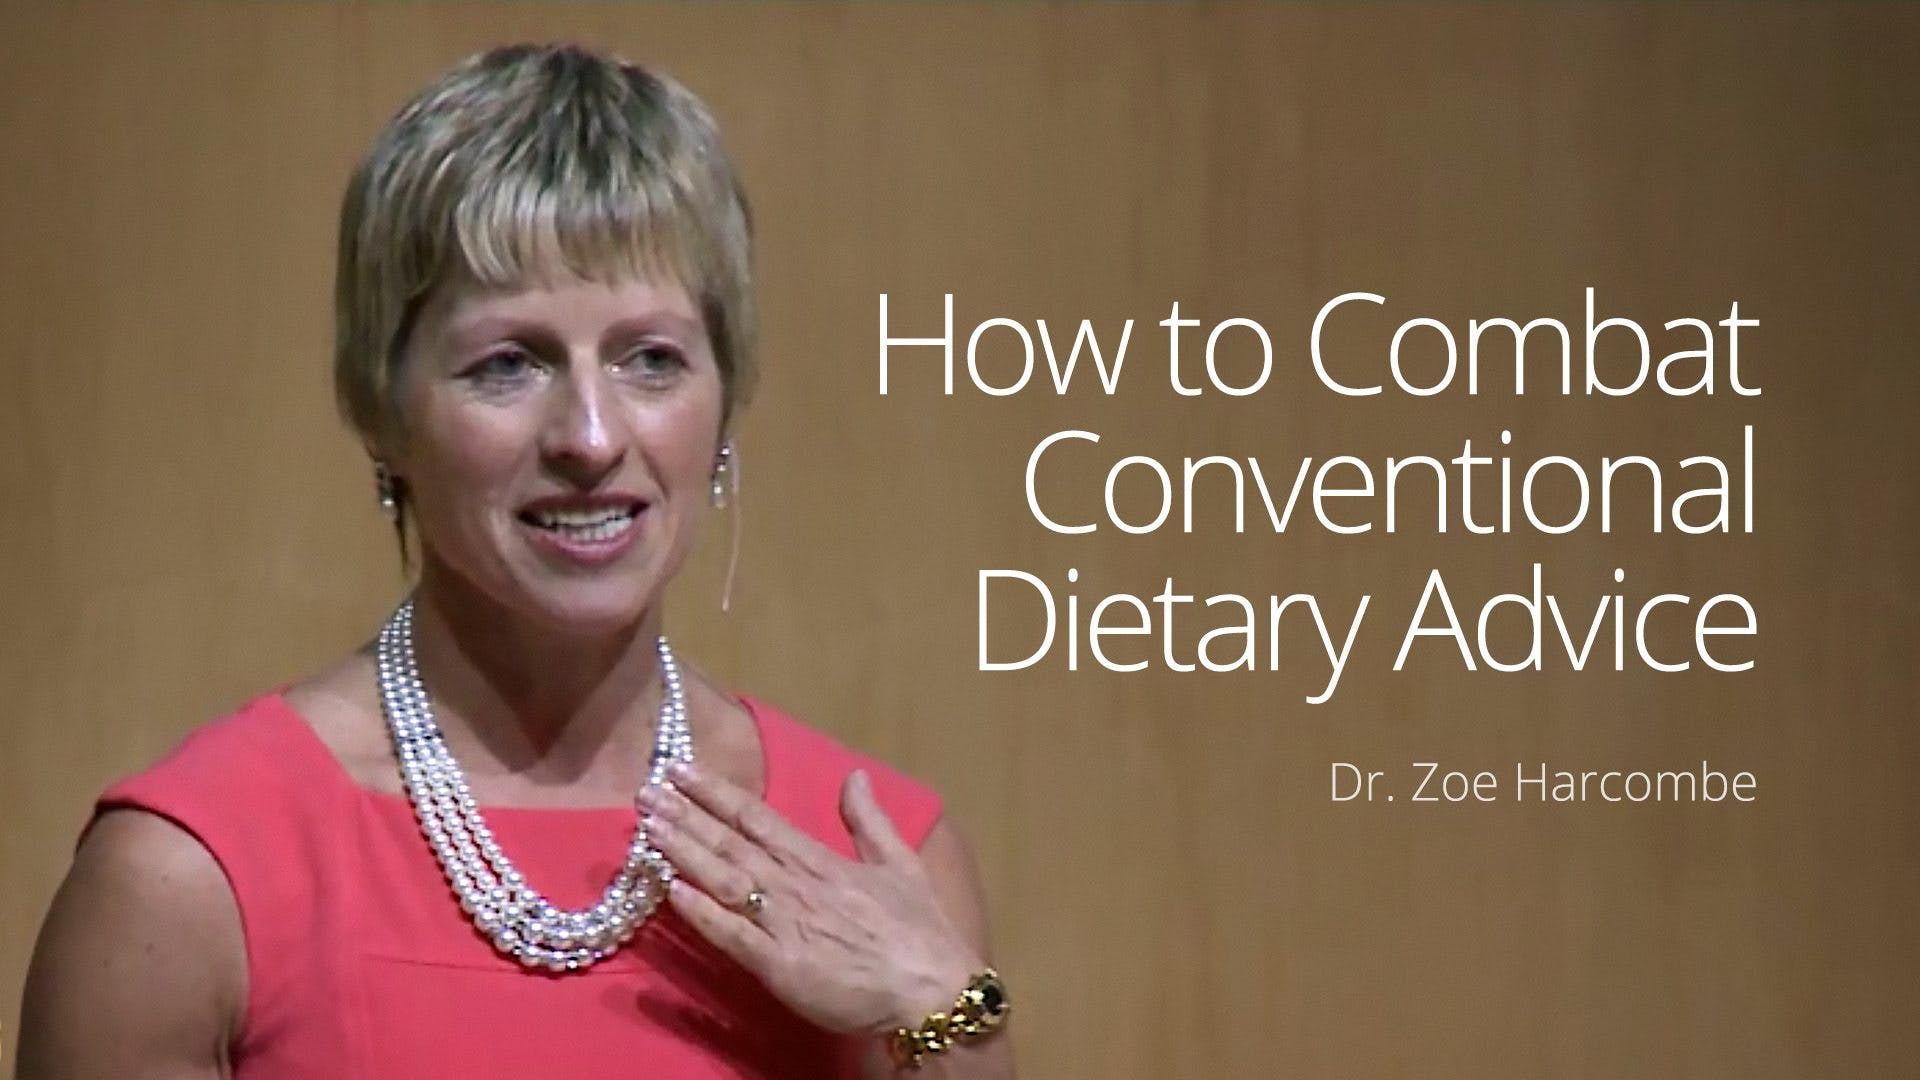 Nutrition Nuggets to Combat Coventional Dietary Advice – Presentation with Dr. Zoe Harcombe